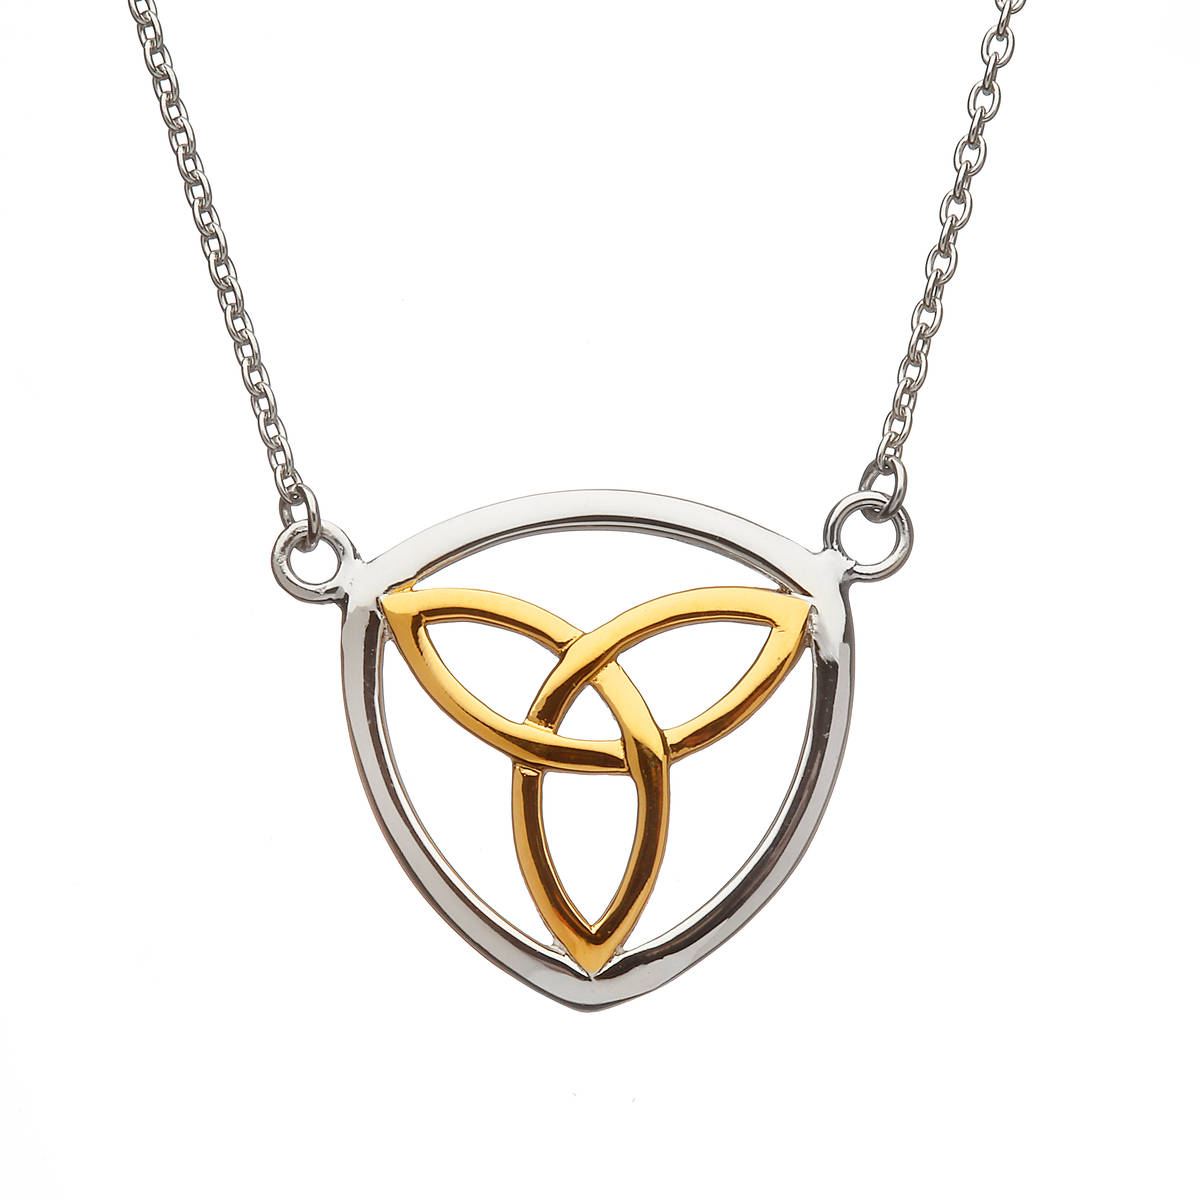 Silver Open Pendant With Gp Centre Trinity Knot On Split Chain